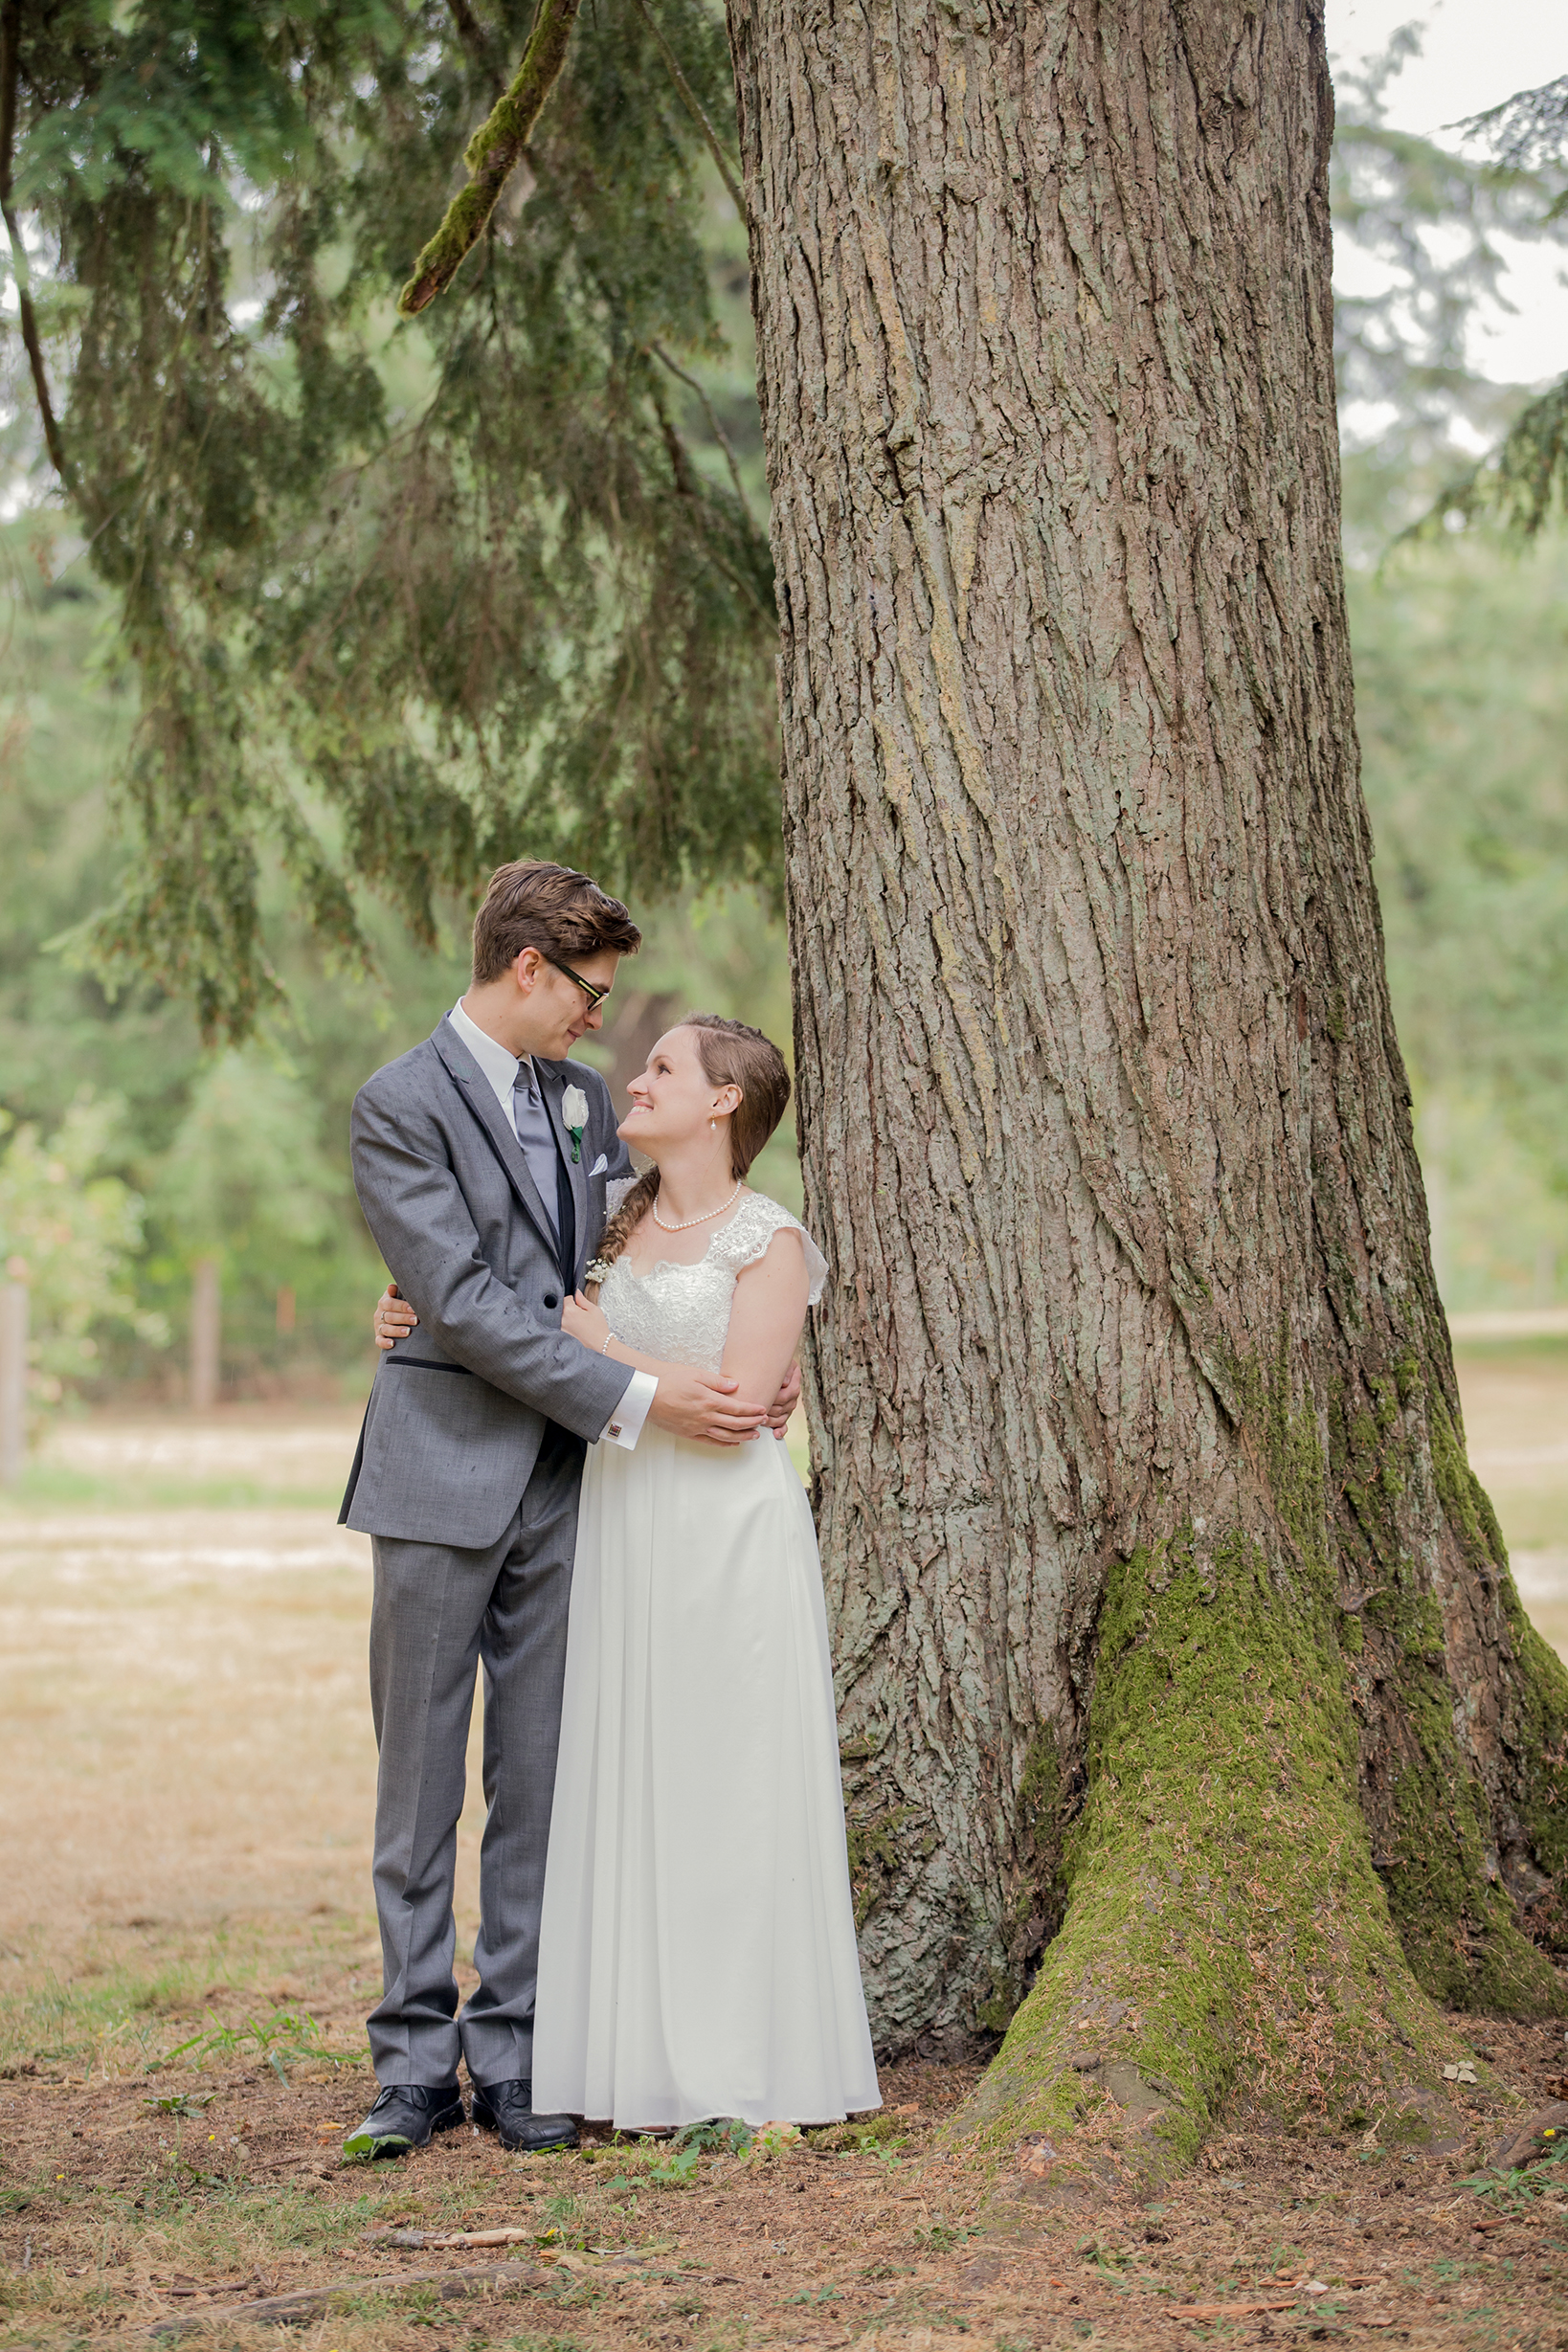 Dayna and Dylan - WT (414 of 793).jpg